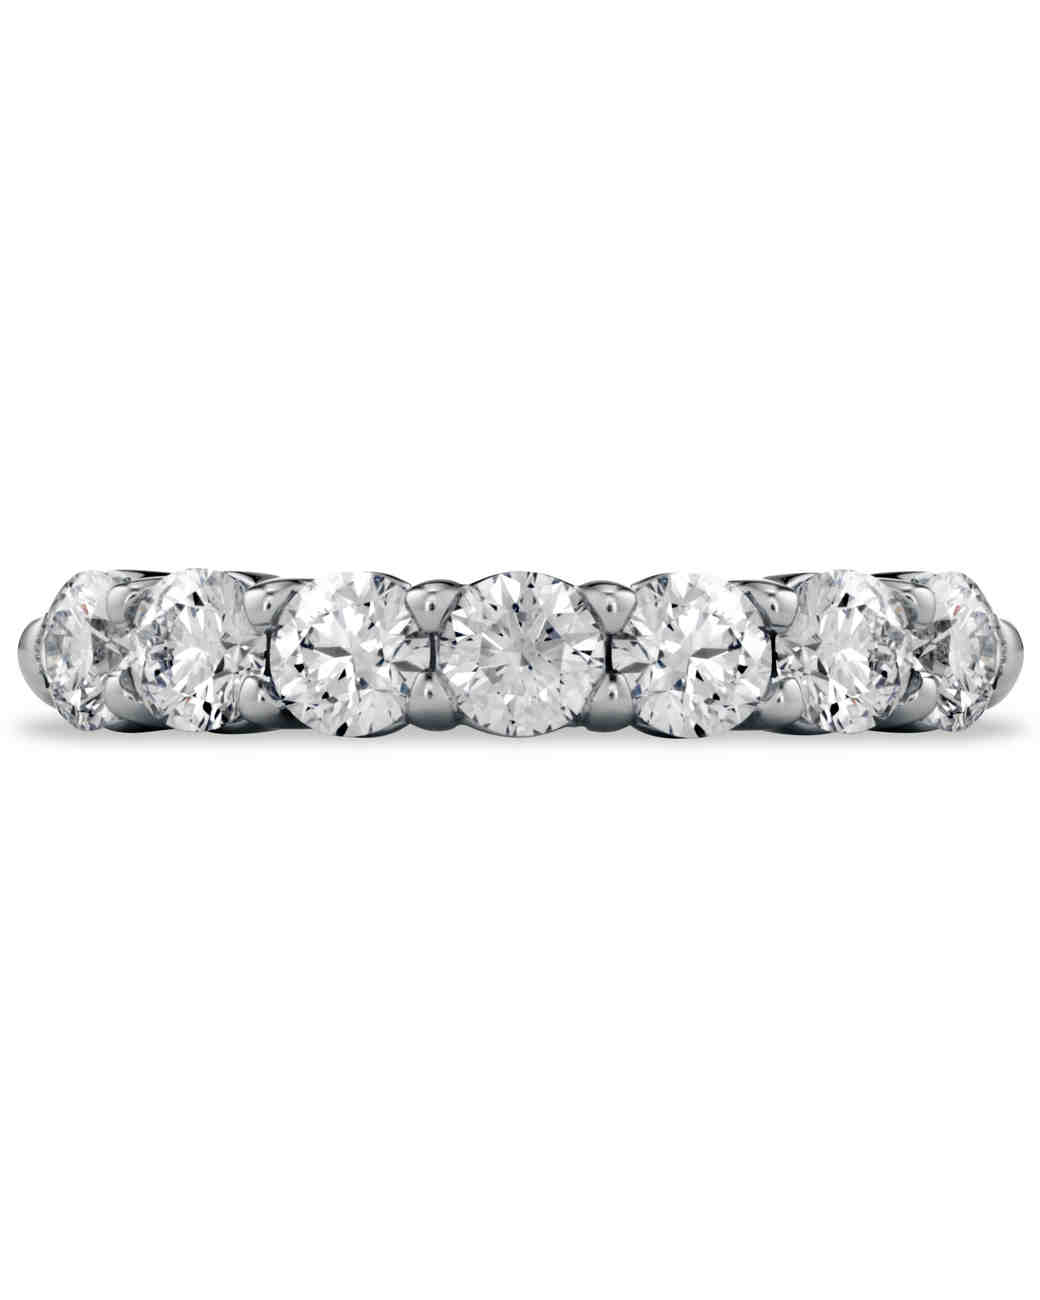 womens-wedding-bands-heartsonfire-0415.jpg